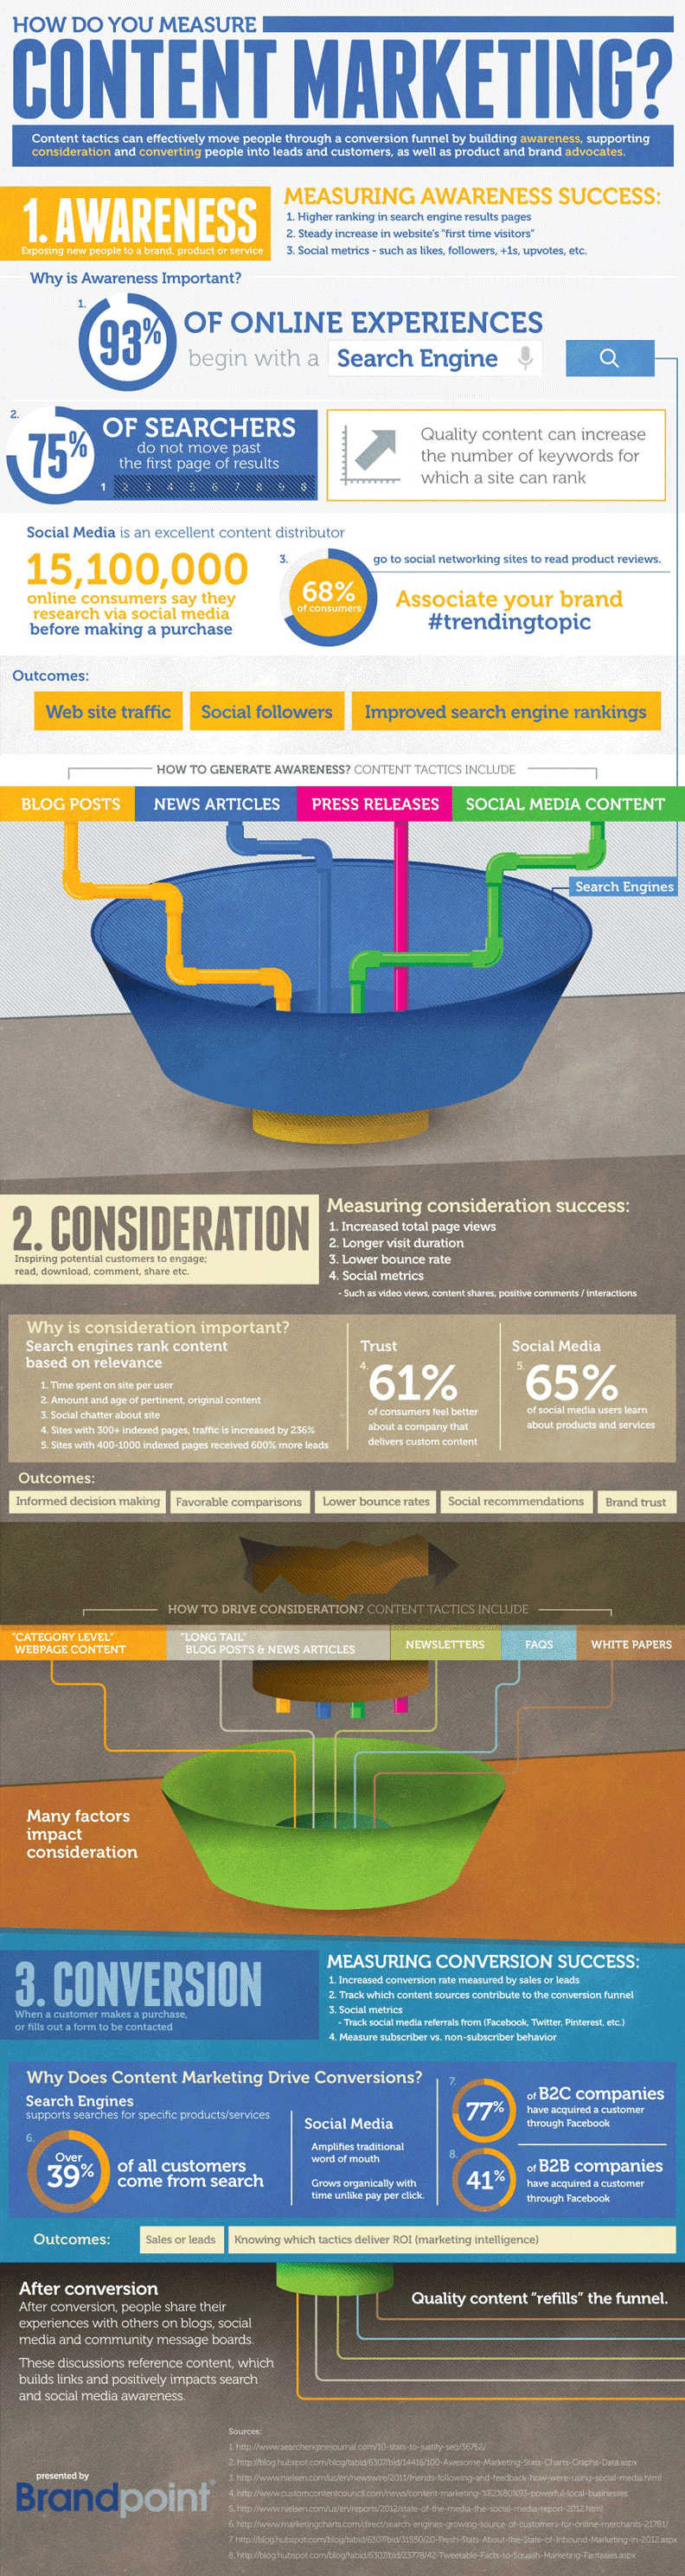 How to measure content marketing infographic